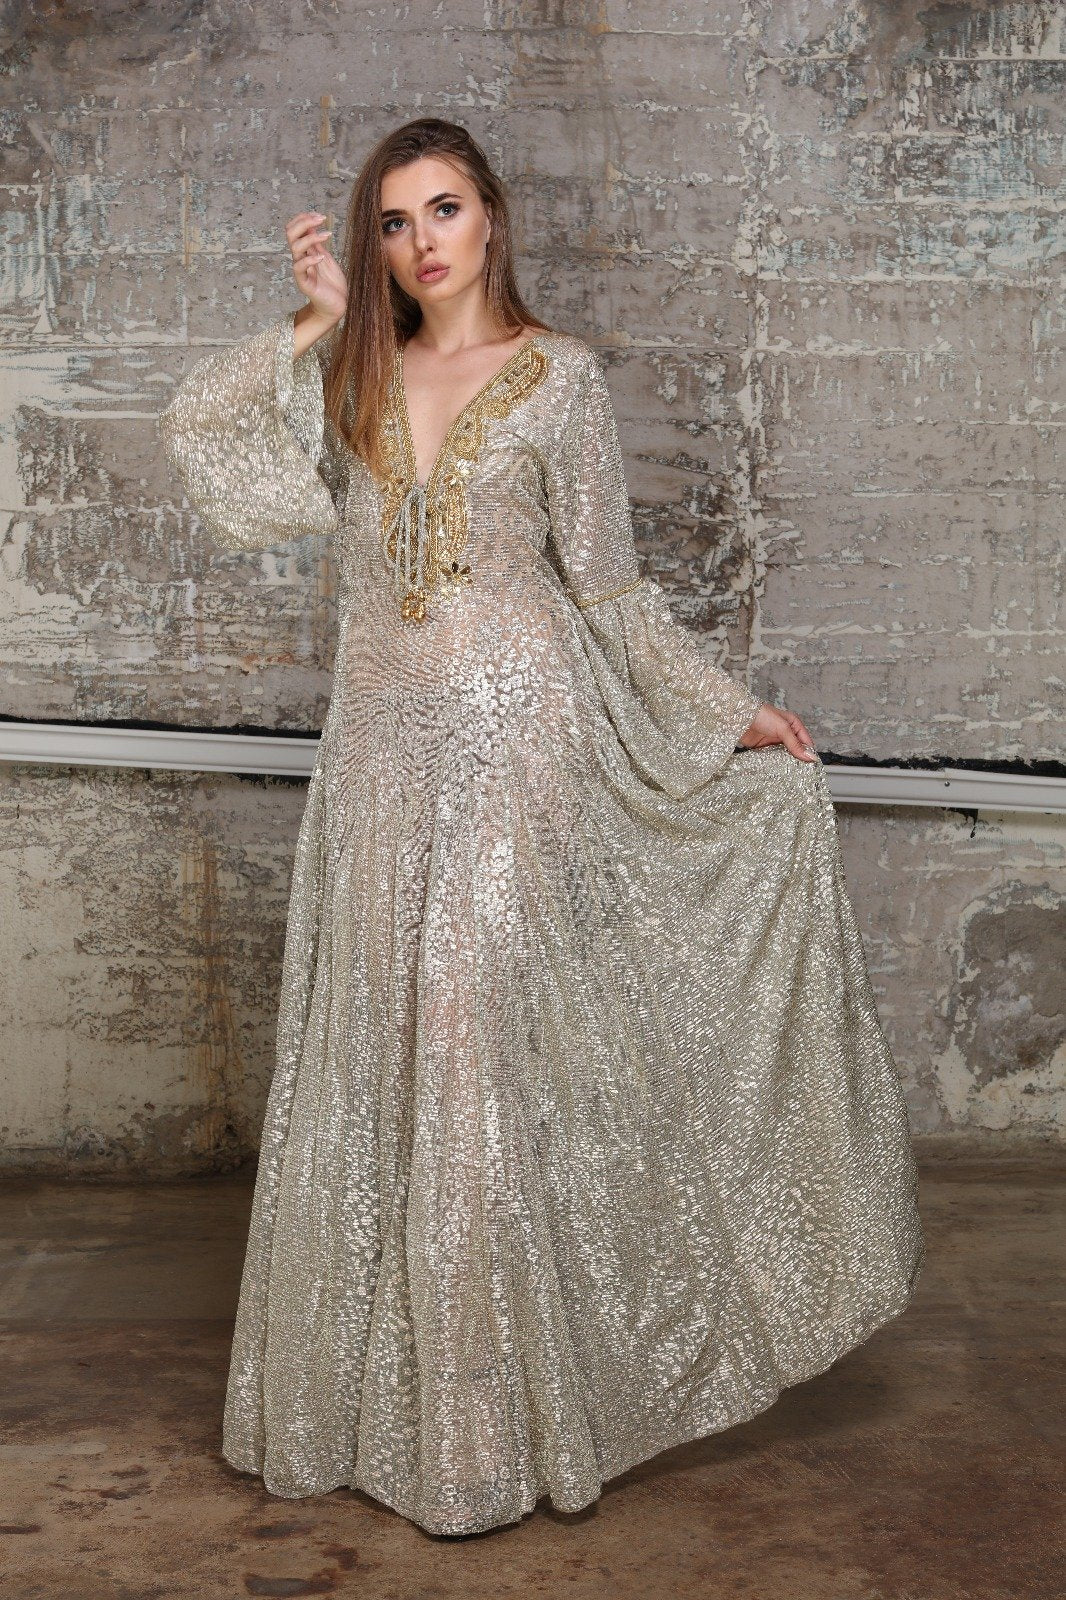 Princess Dress Gold - Organic World Nation